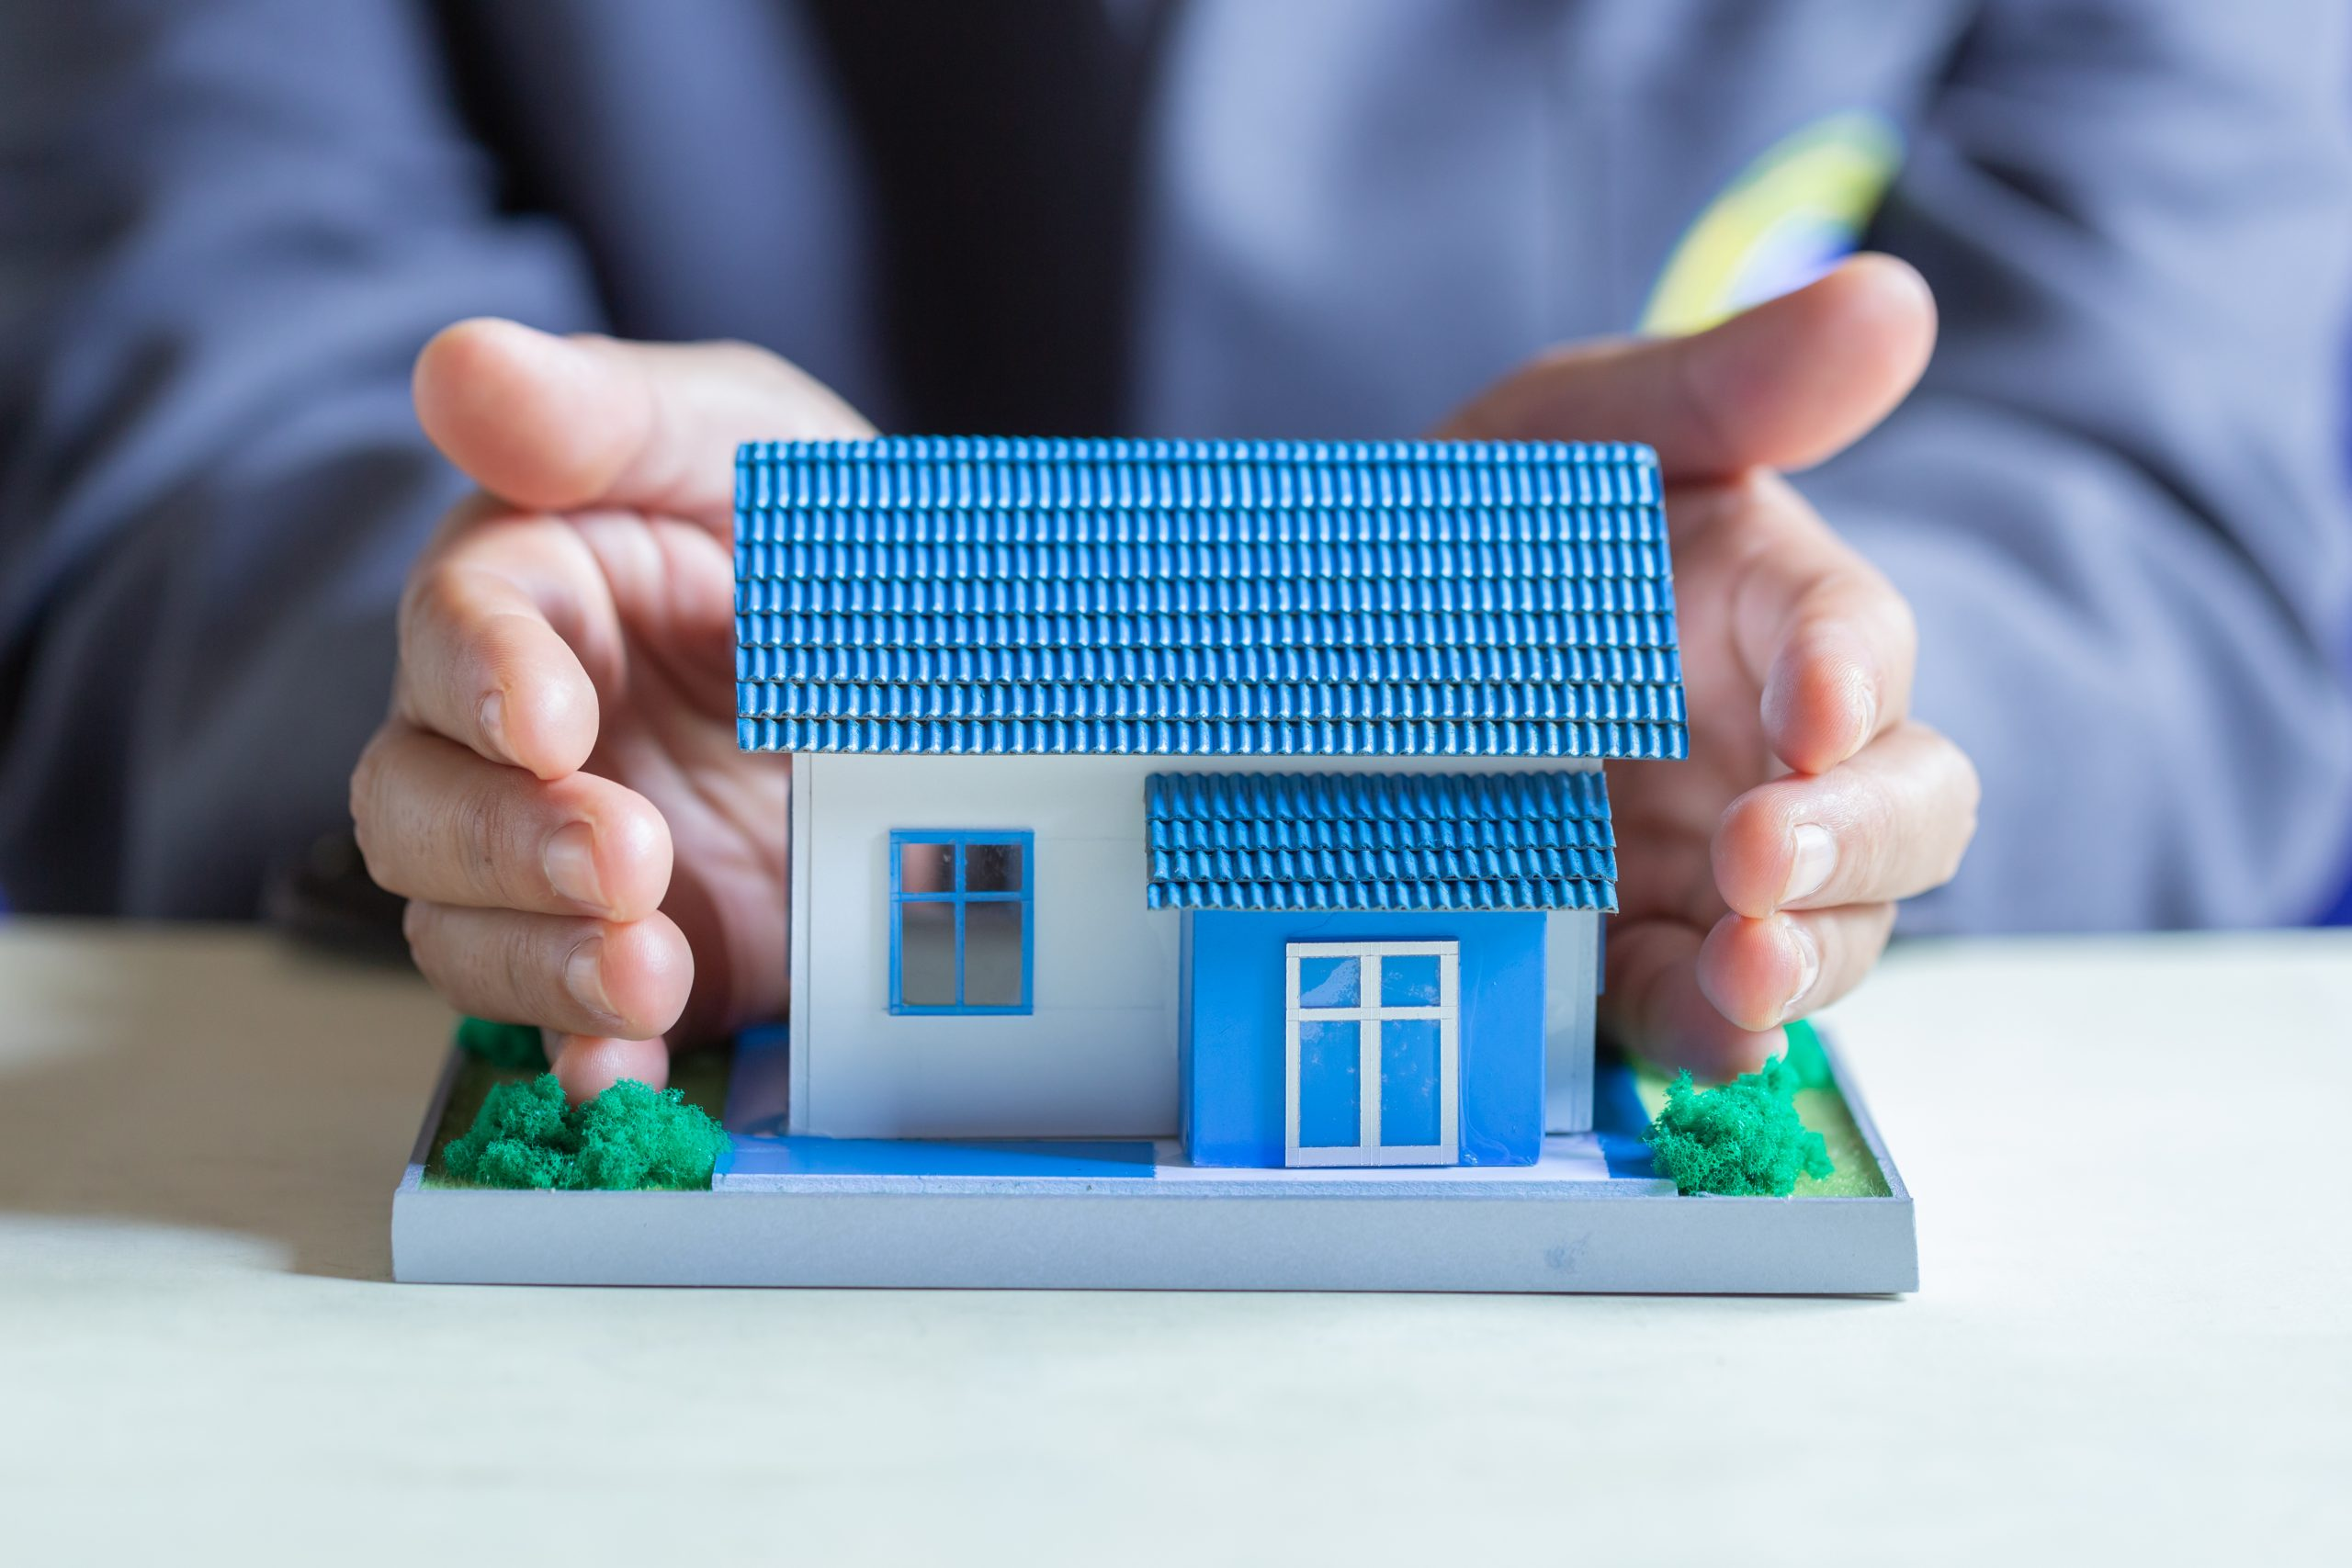 House protection in a bank. The concept of Protection and property insurance.